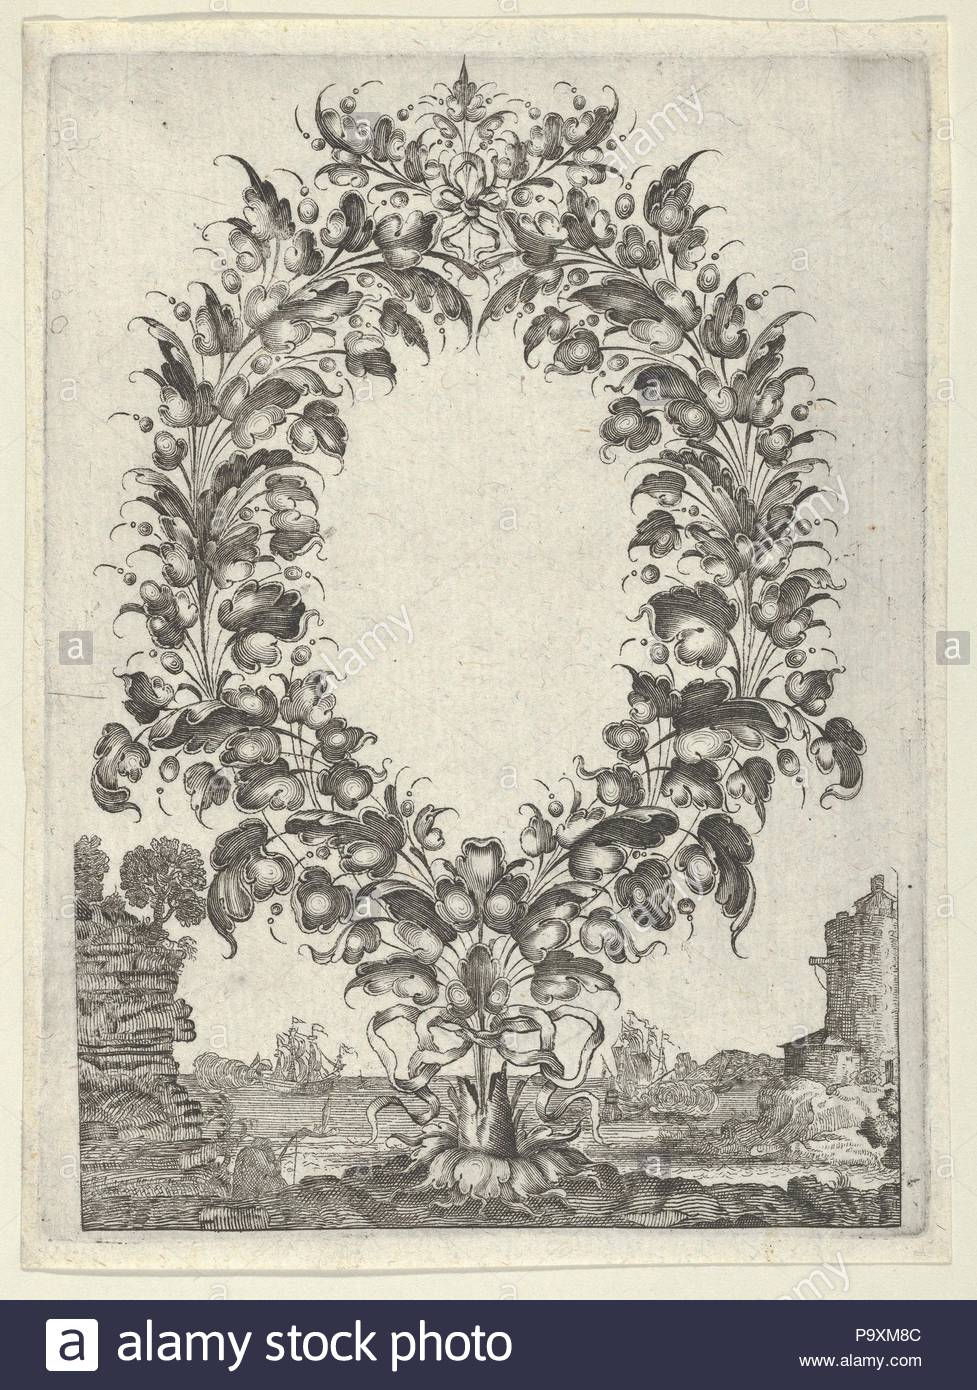 Goldsmith's Bouquet, from Newes Lauberbuechlein, 1628–66, Engraving, Sheet: 6 × 4 1/2 in. (15.2 × 11.4 cm), Peter Aubry II (German, 1610–1666), After Gédéon Légaré (French, 1615–1676) (?), Decorative floral arrangement in shape of a wreath emerging from a tree trunk at center. At right a lighthouse, with ships in the water beyond. At bottom left, the figure of a fisher. From a set of seven plates by Peter Aubry II after 'Livre de Feuilles d'Orfevrerie,' designed by Gédéon Légaré and engraved by P. - Stock Image